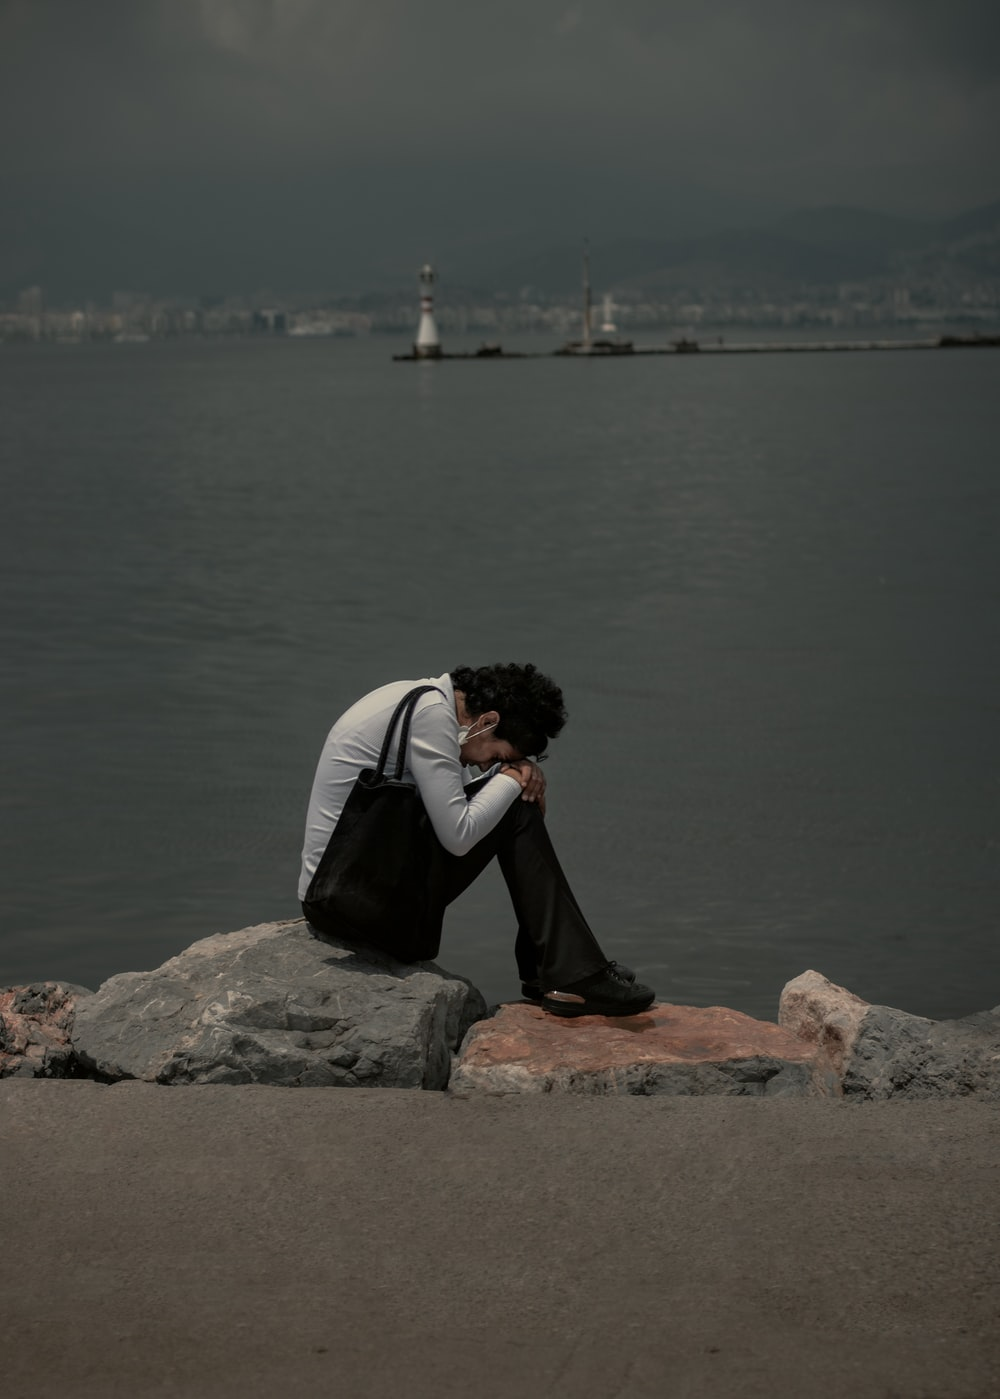 man in black and white jacket sitting on brown rock near body of water during daytime